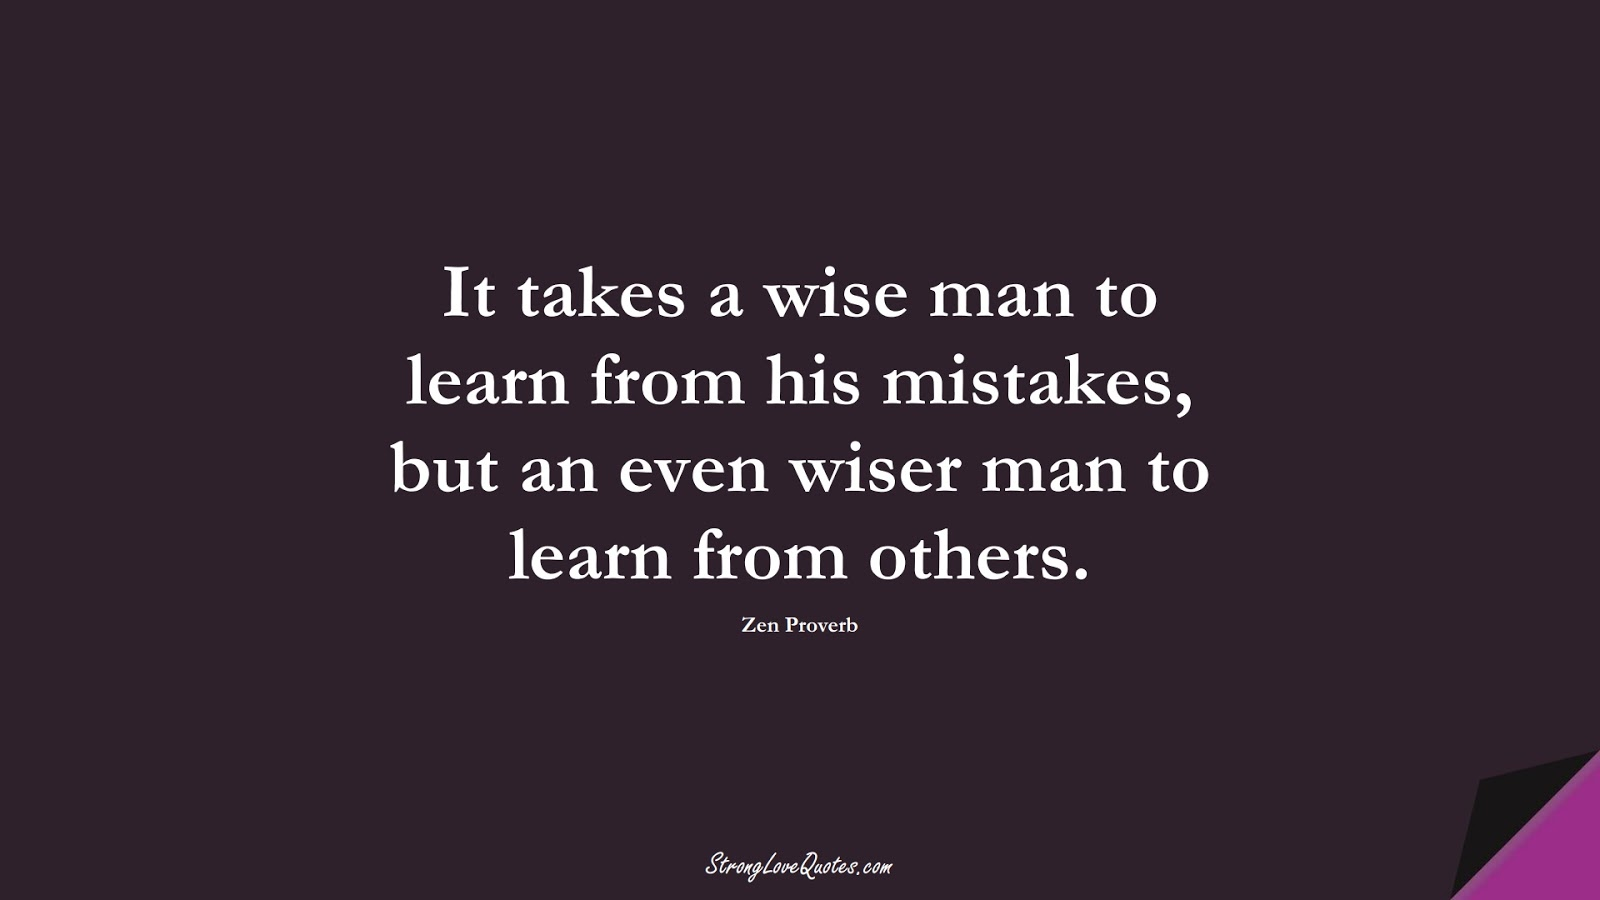 It takes a wise man to learn from his mistakes, but an even wiser man to learn from others. (Zen Proverb);  #LearningQuotes